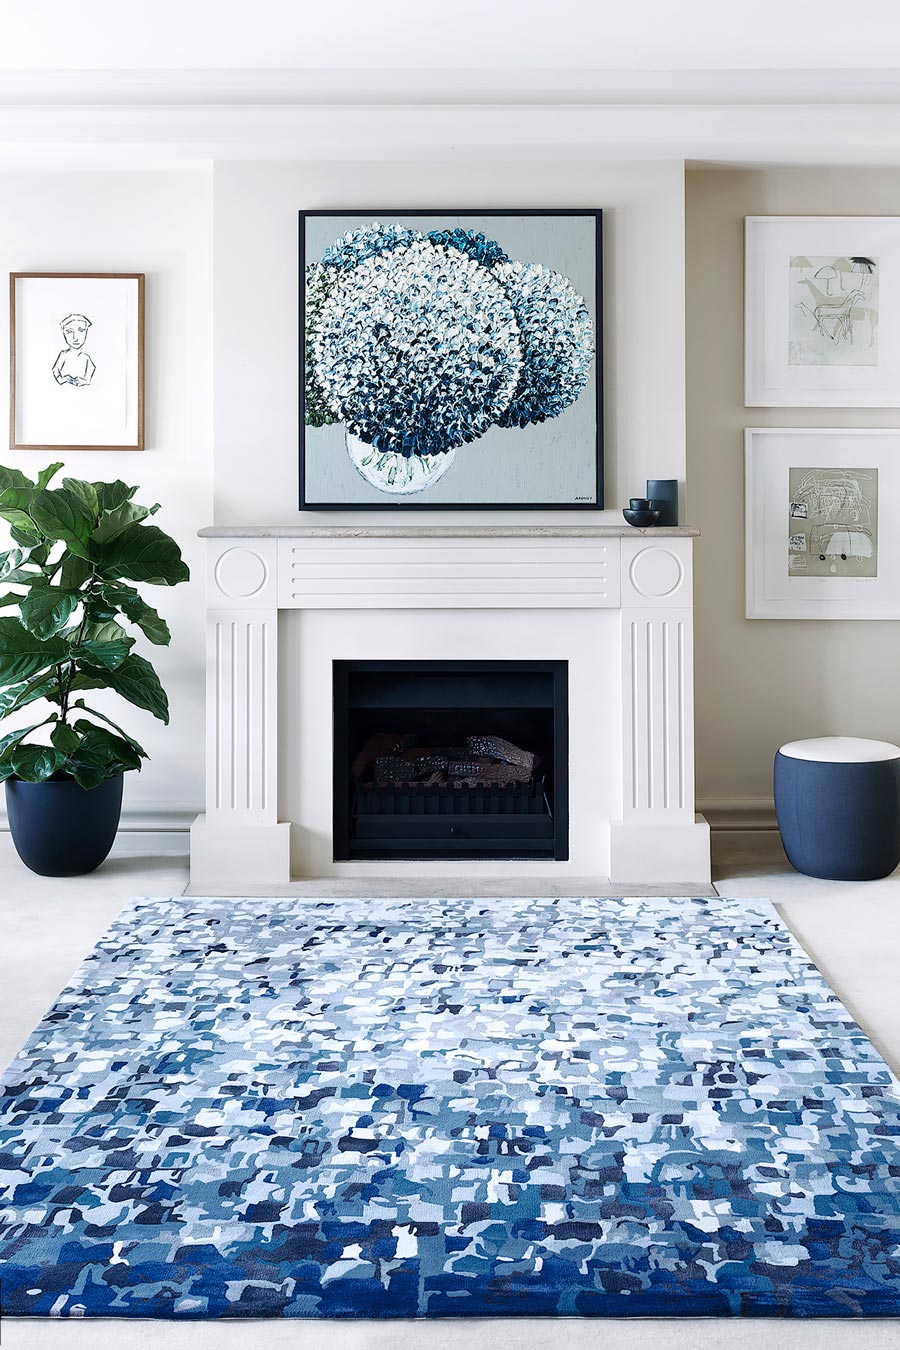 location living room shot of bronte rug by felicia aroney blue painterly